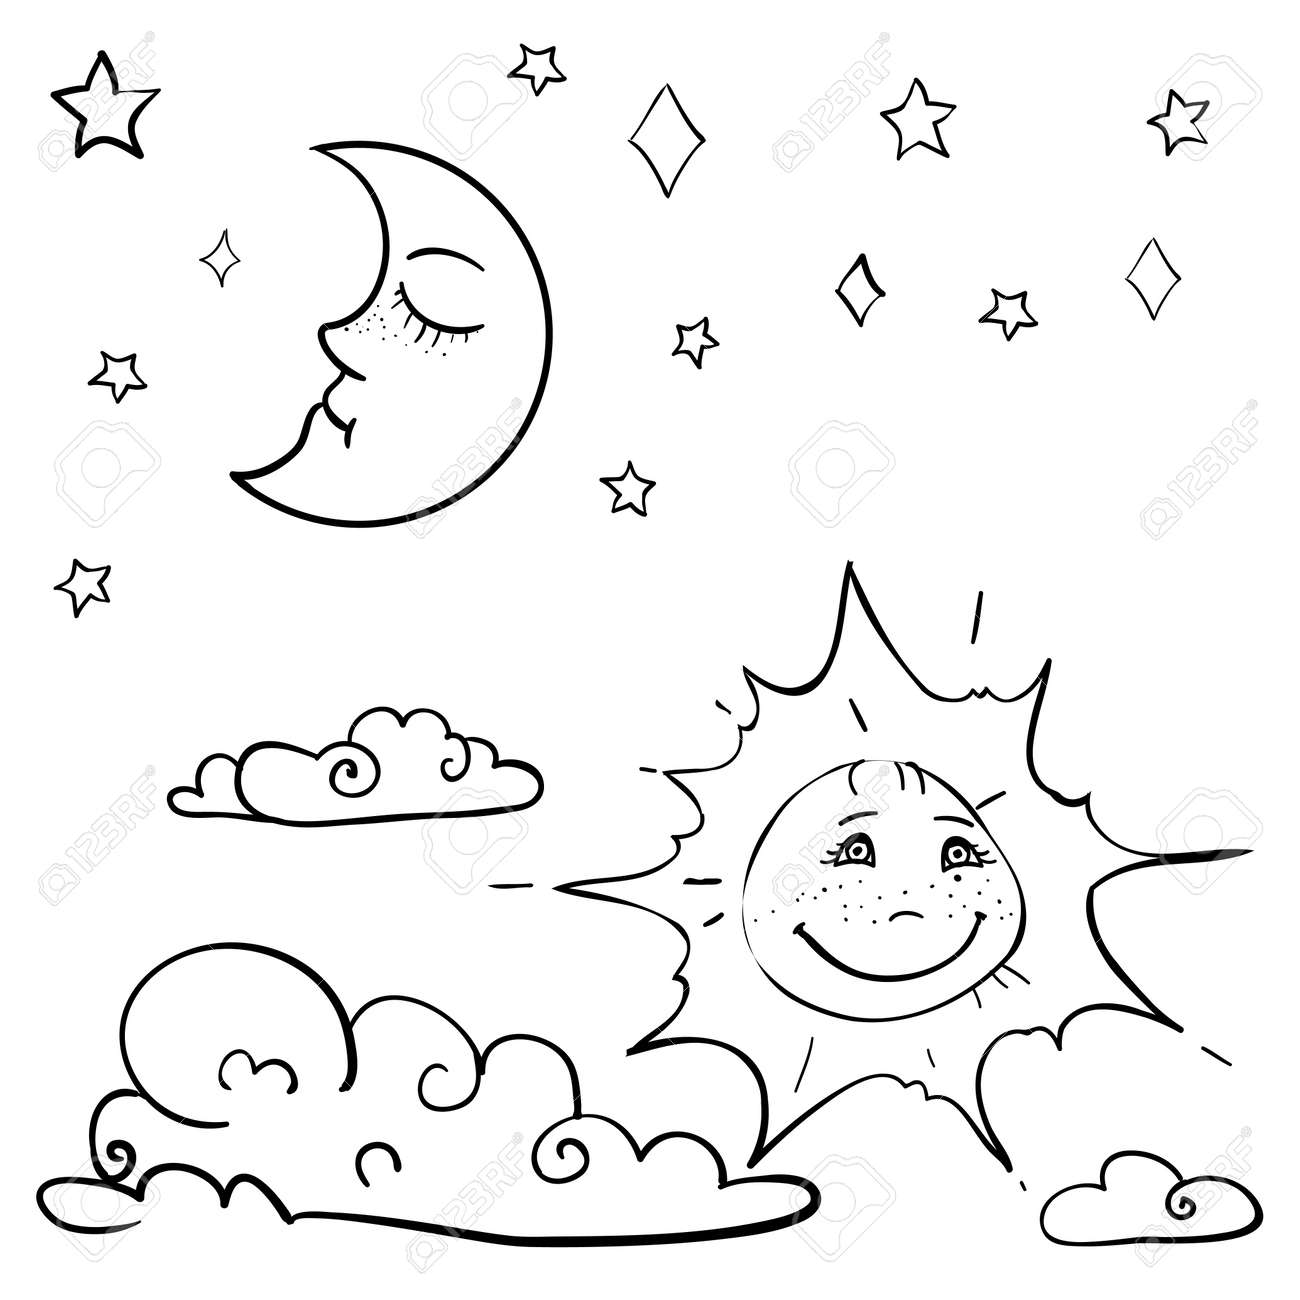 Hand Drawn Vector Children\'s Coloring Book With Moon, Sun, Cloud ...